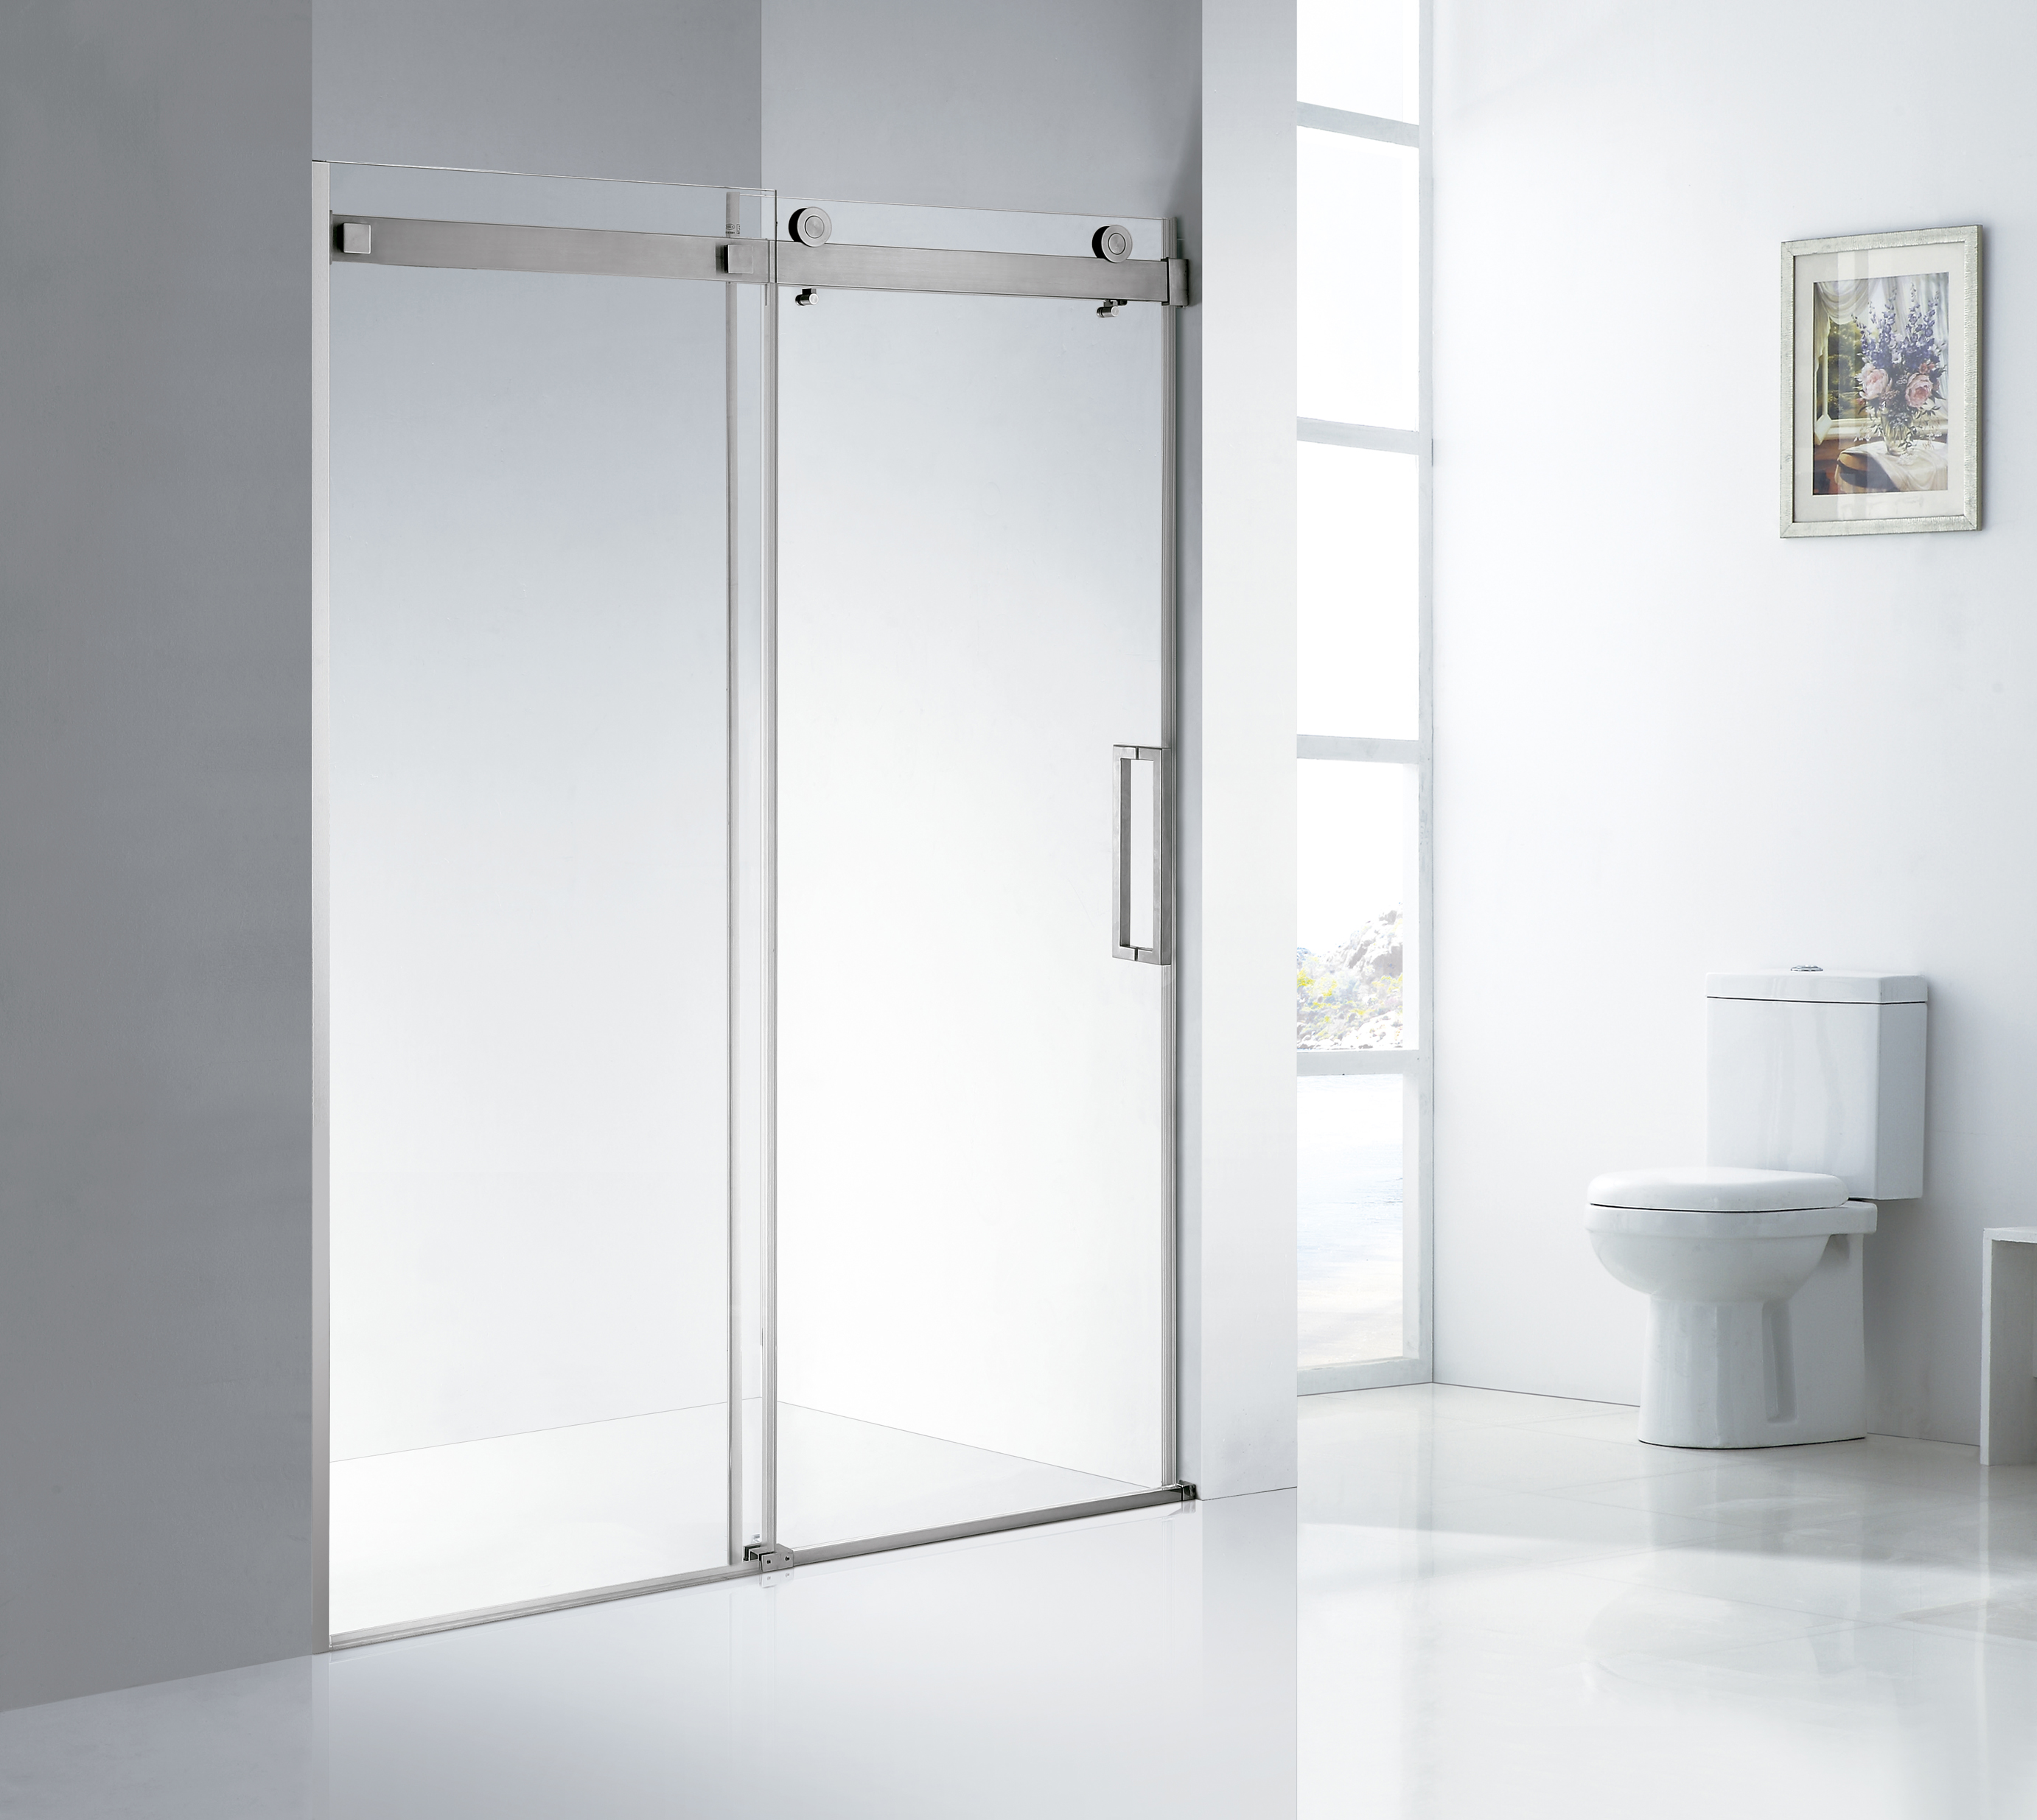 Frameless Stainless Steel Sliding Glass Shower Doors (KD8113)